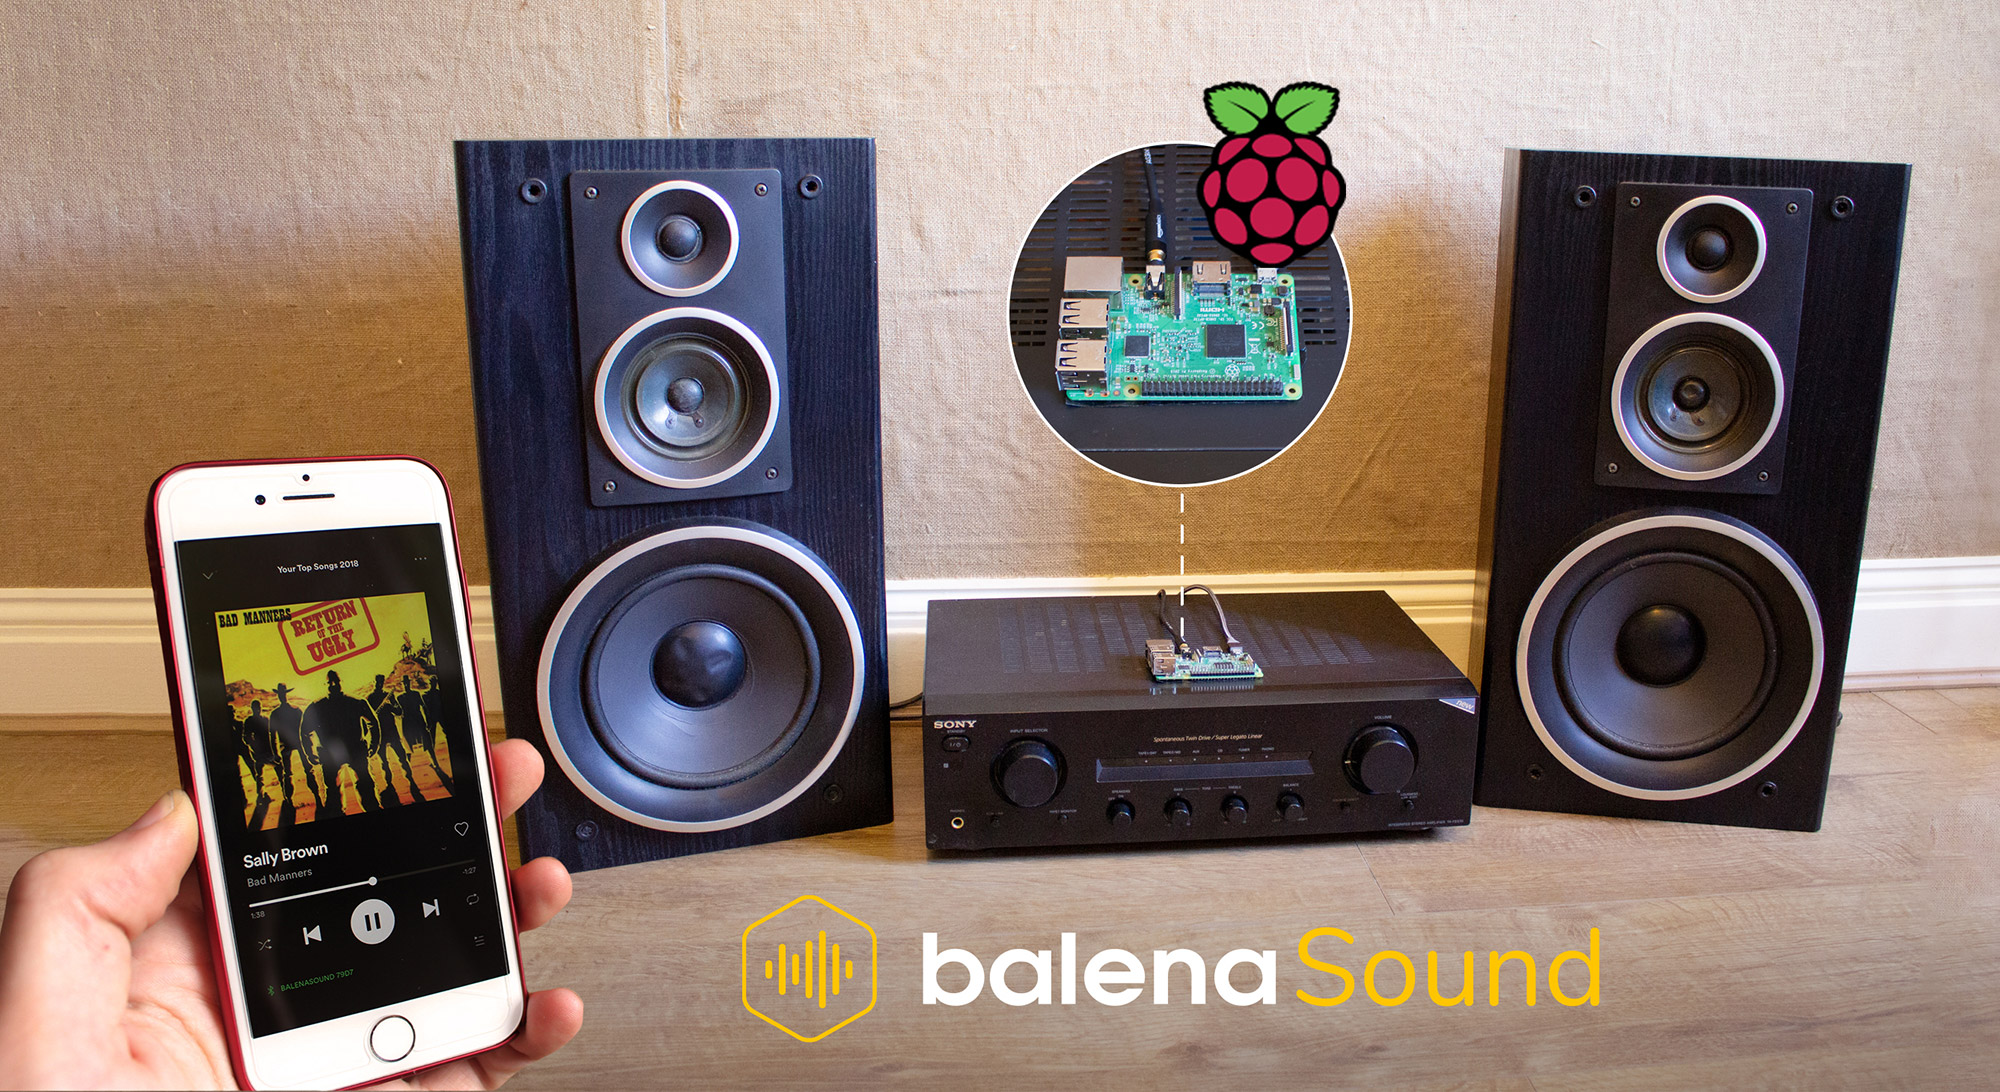 Turn your old speakers or Hi-Fi into Bluetooth, Airplay and Spotify receivers with a Raspberry Pi and this step-by-step guide